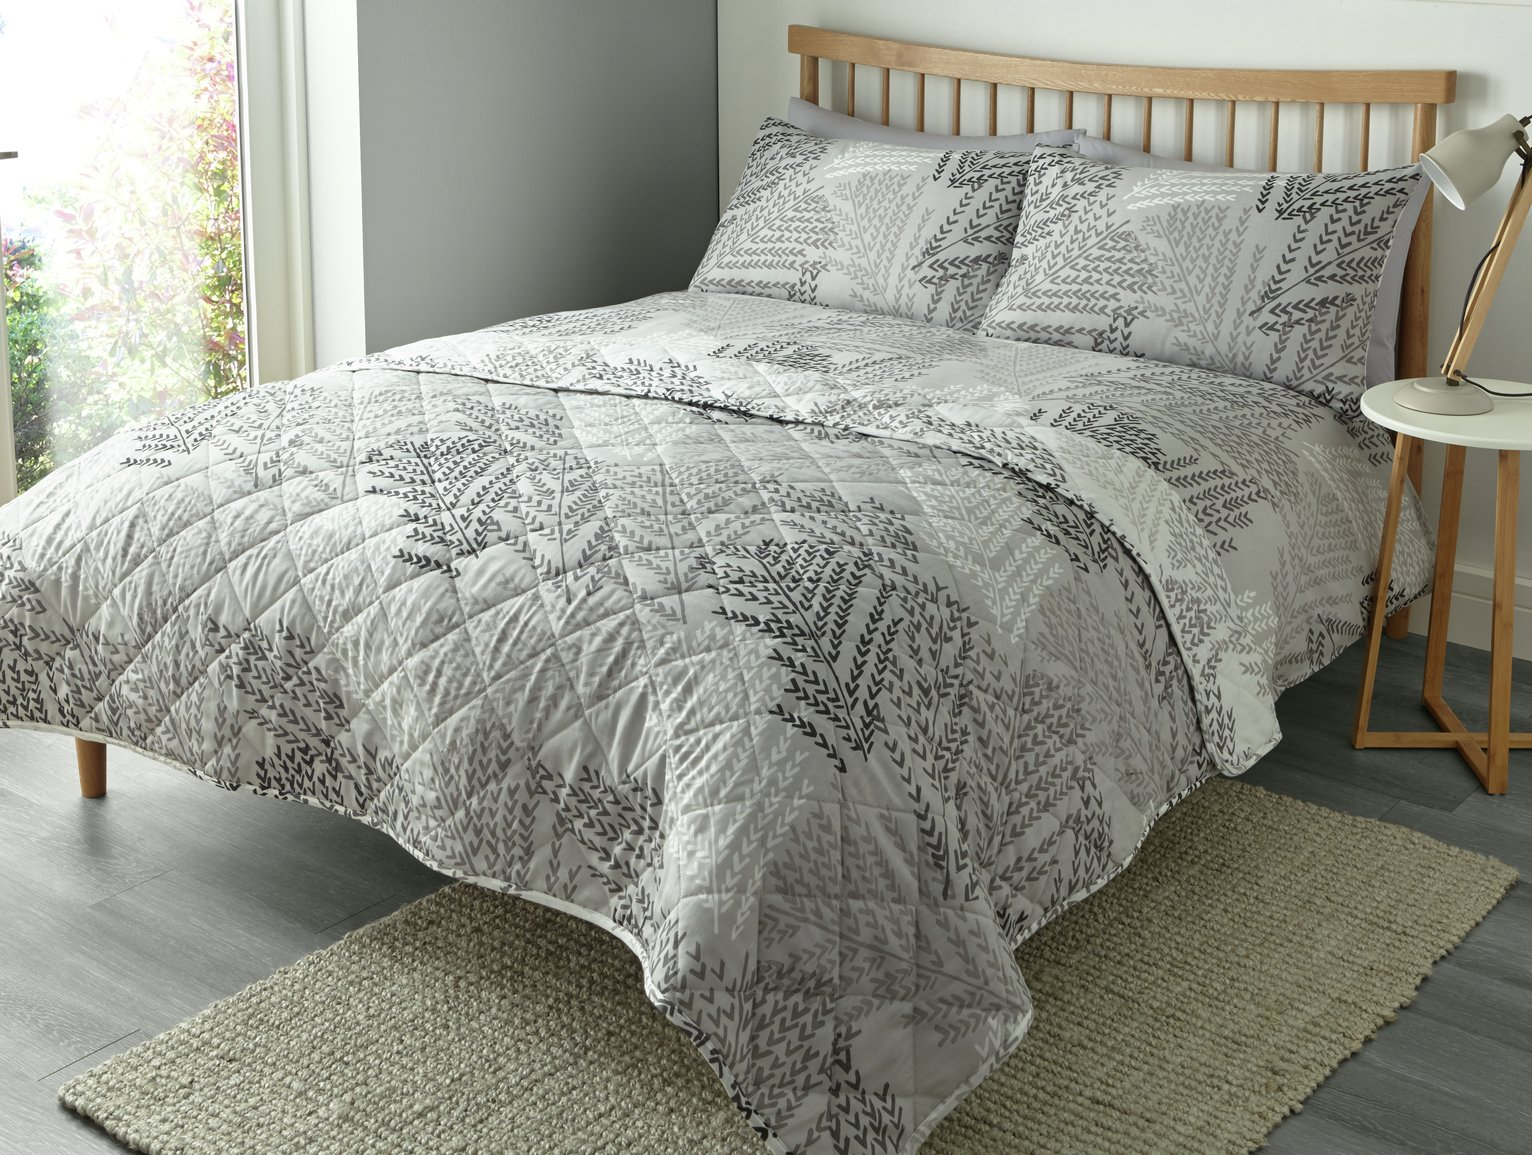 Image of Fusion Alena Silver Bedding Set - Single